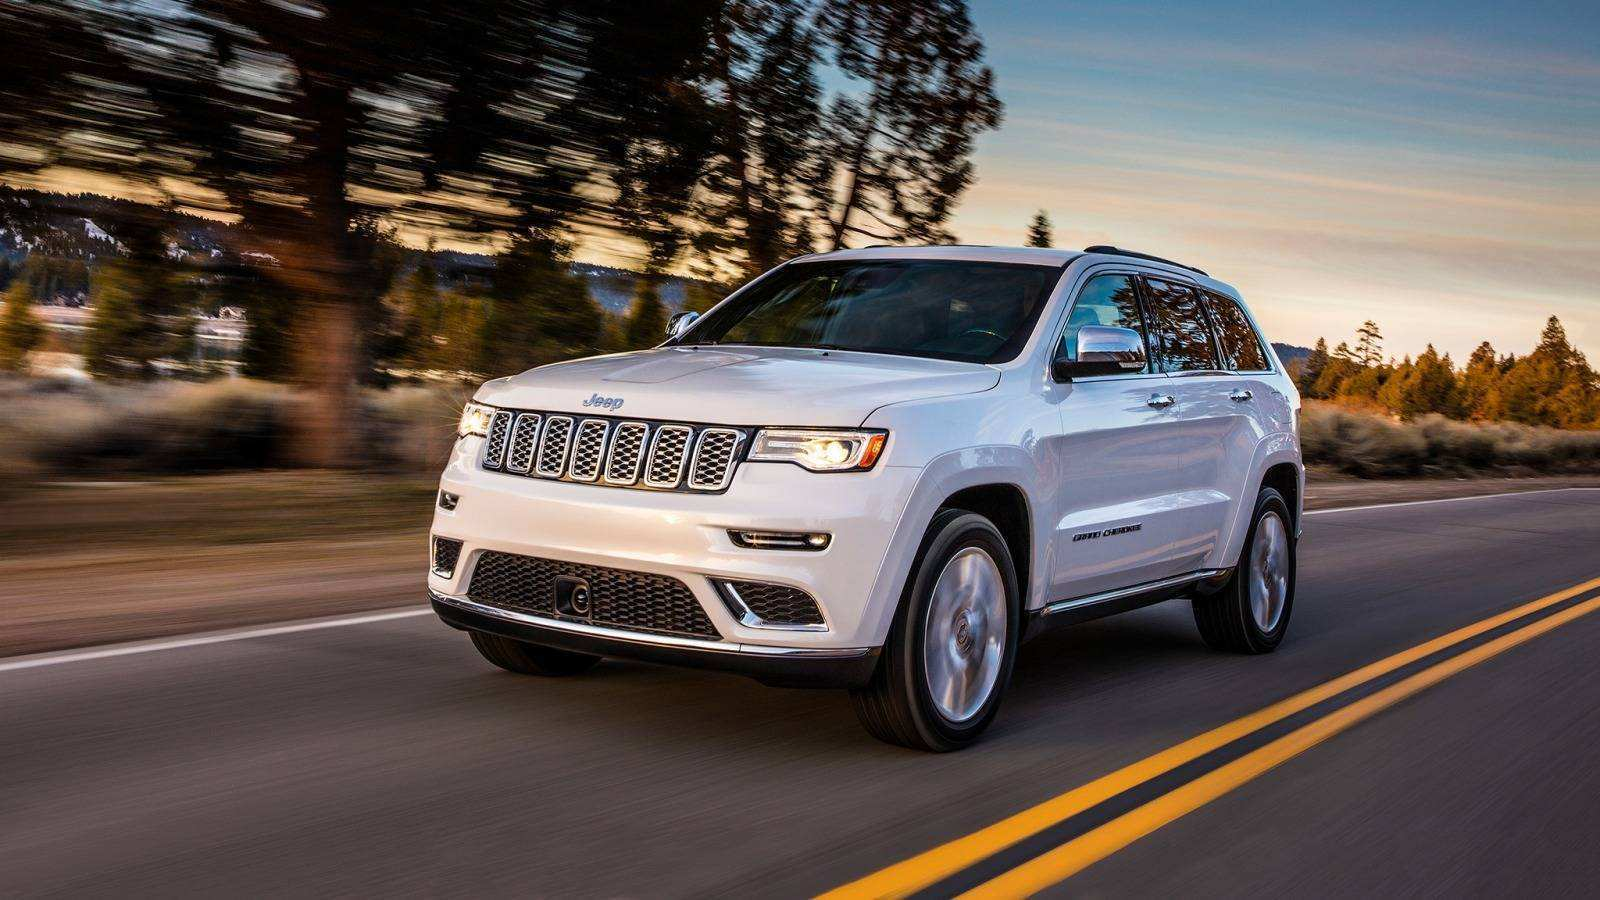 91 Best Review New 2019 Jeep Cherokee Horsepower Release Specs And Review Release with New 2019 Jeep Cherokee Horsepower Release Specs And Review